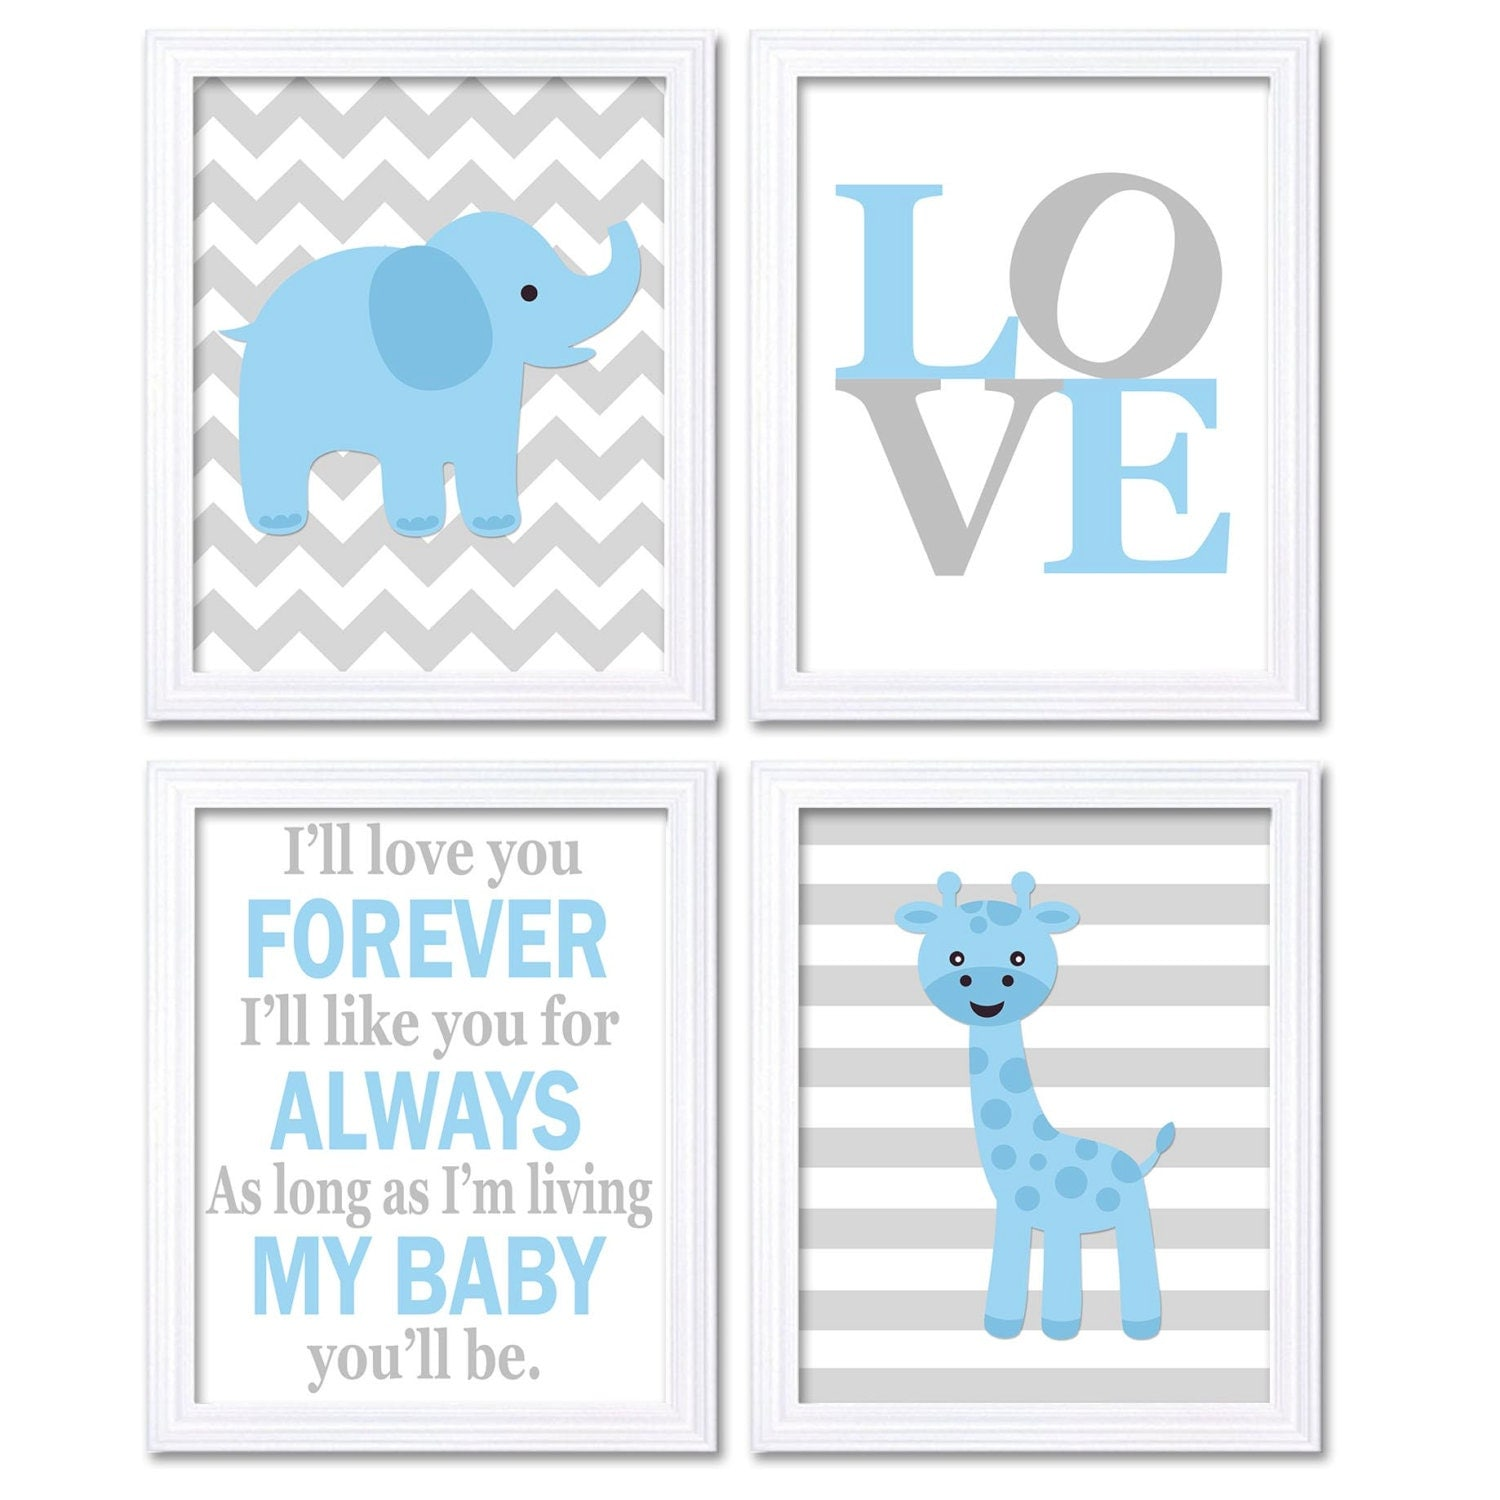 Elephant Nursery Art Giraffe Wall Decor Ill Love You Forever Set of 4 Prints Baby Blue Grey Child Ki